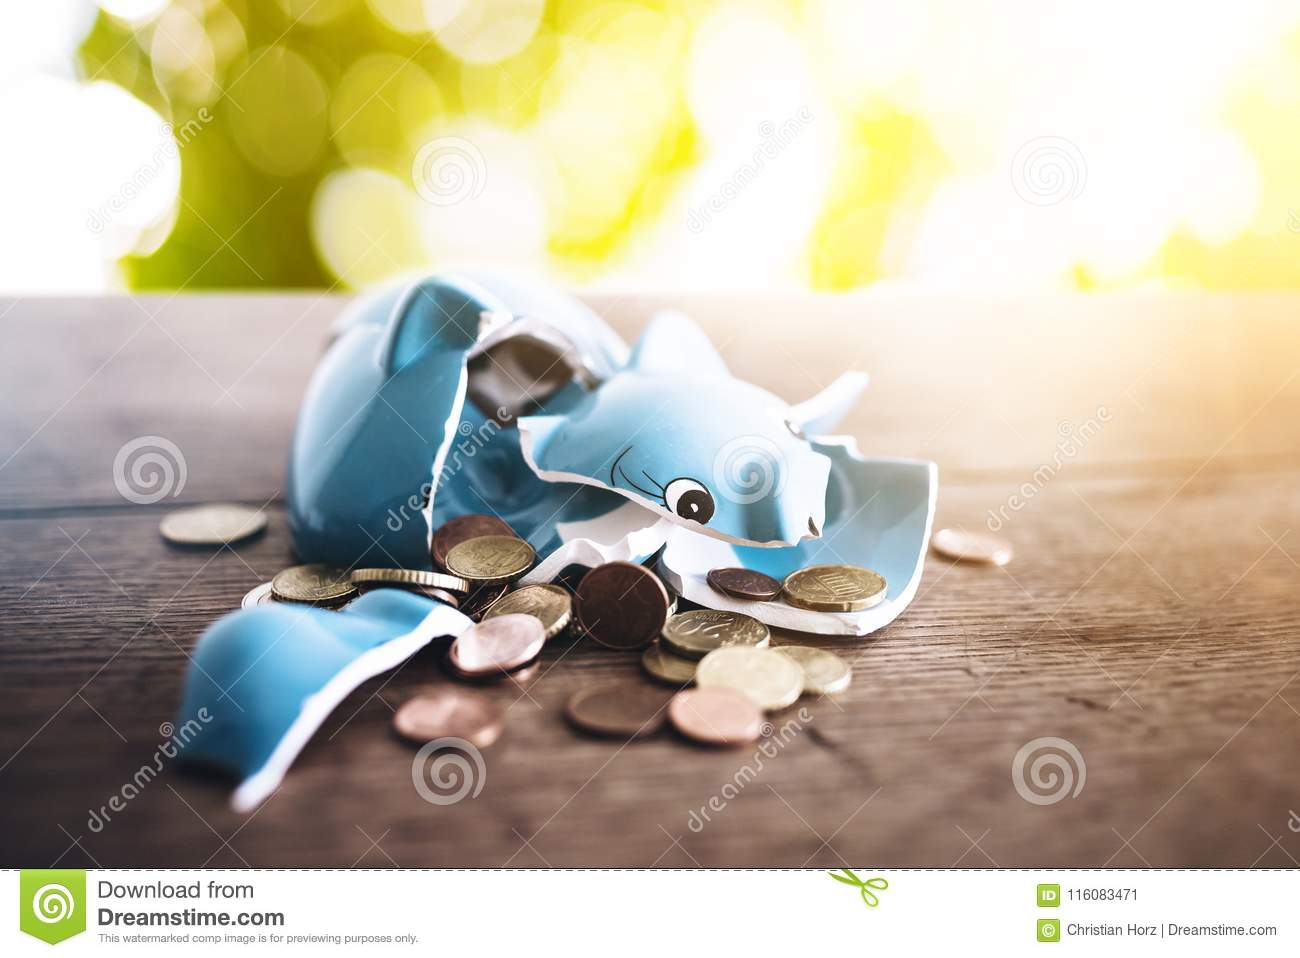 Shattered broken piggy bank with coins on rustic wooden table finance concept